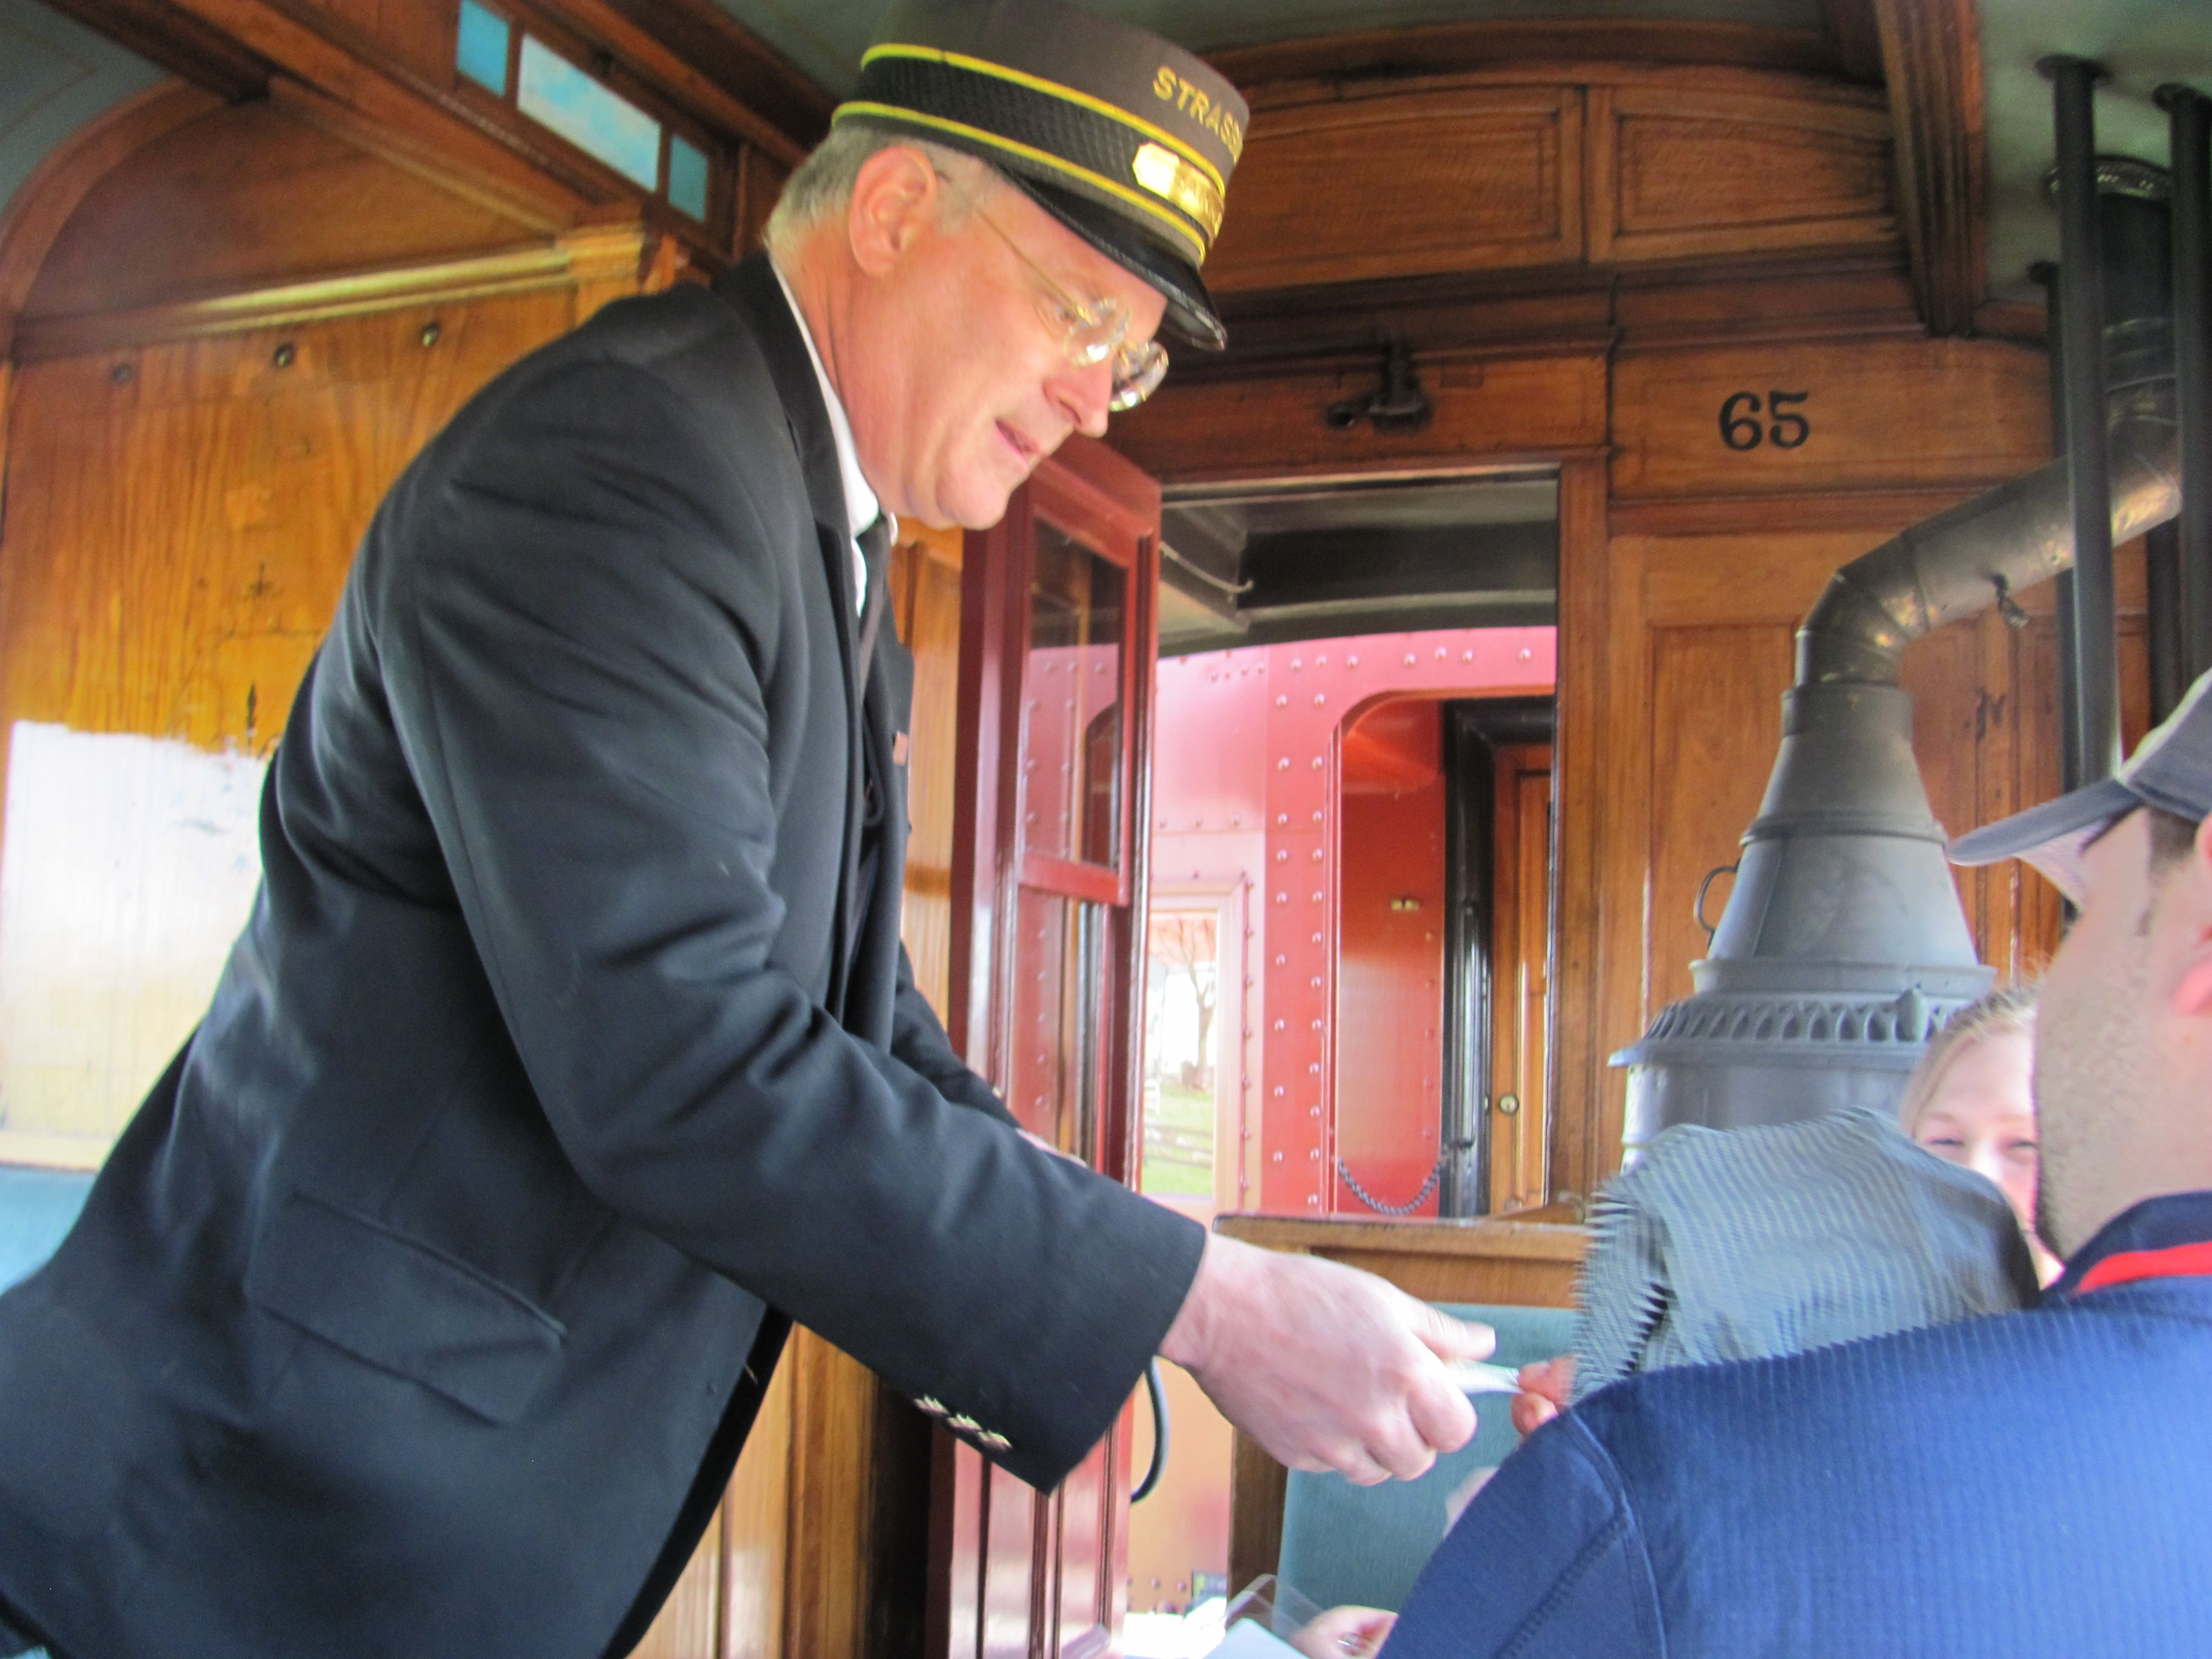 Train to colorado from pa - Conductor Taking Tickets On Board The Turn Of The Century Steam Train At